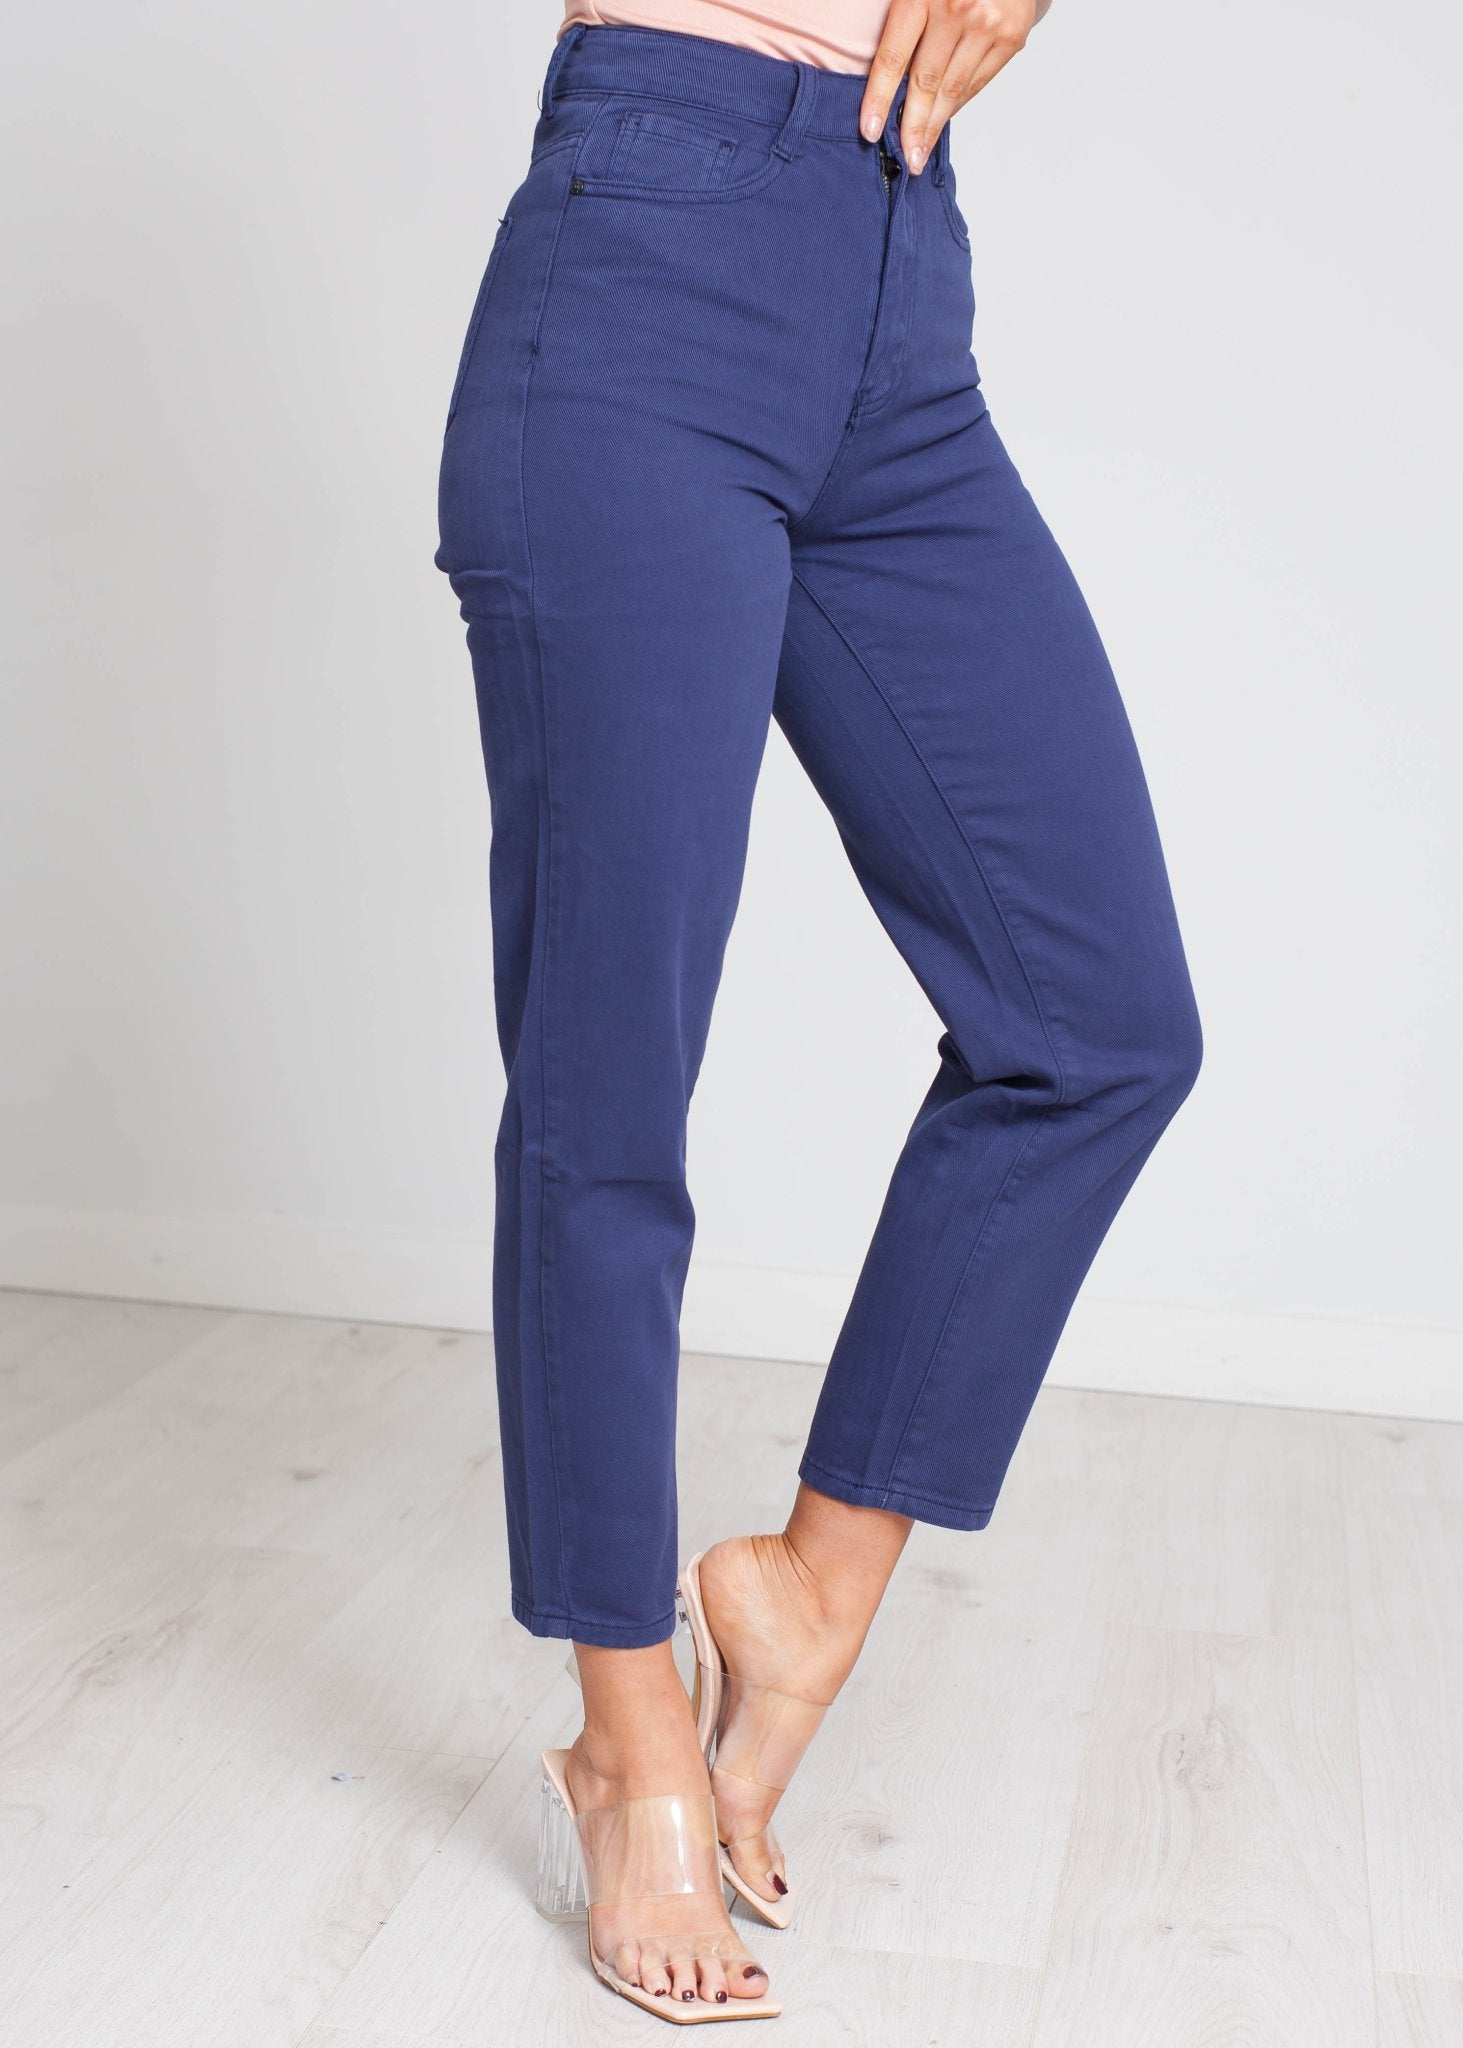 Aria High Waist Mom Jean In Navy - The Walk in Wardrobe